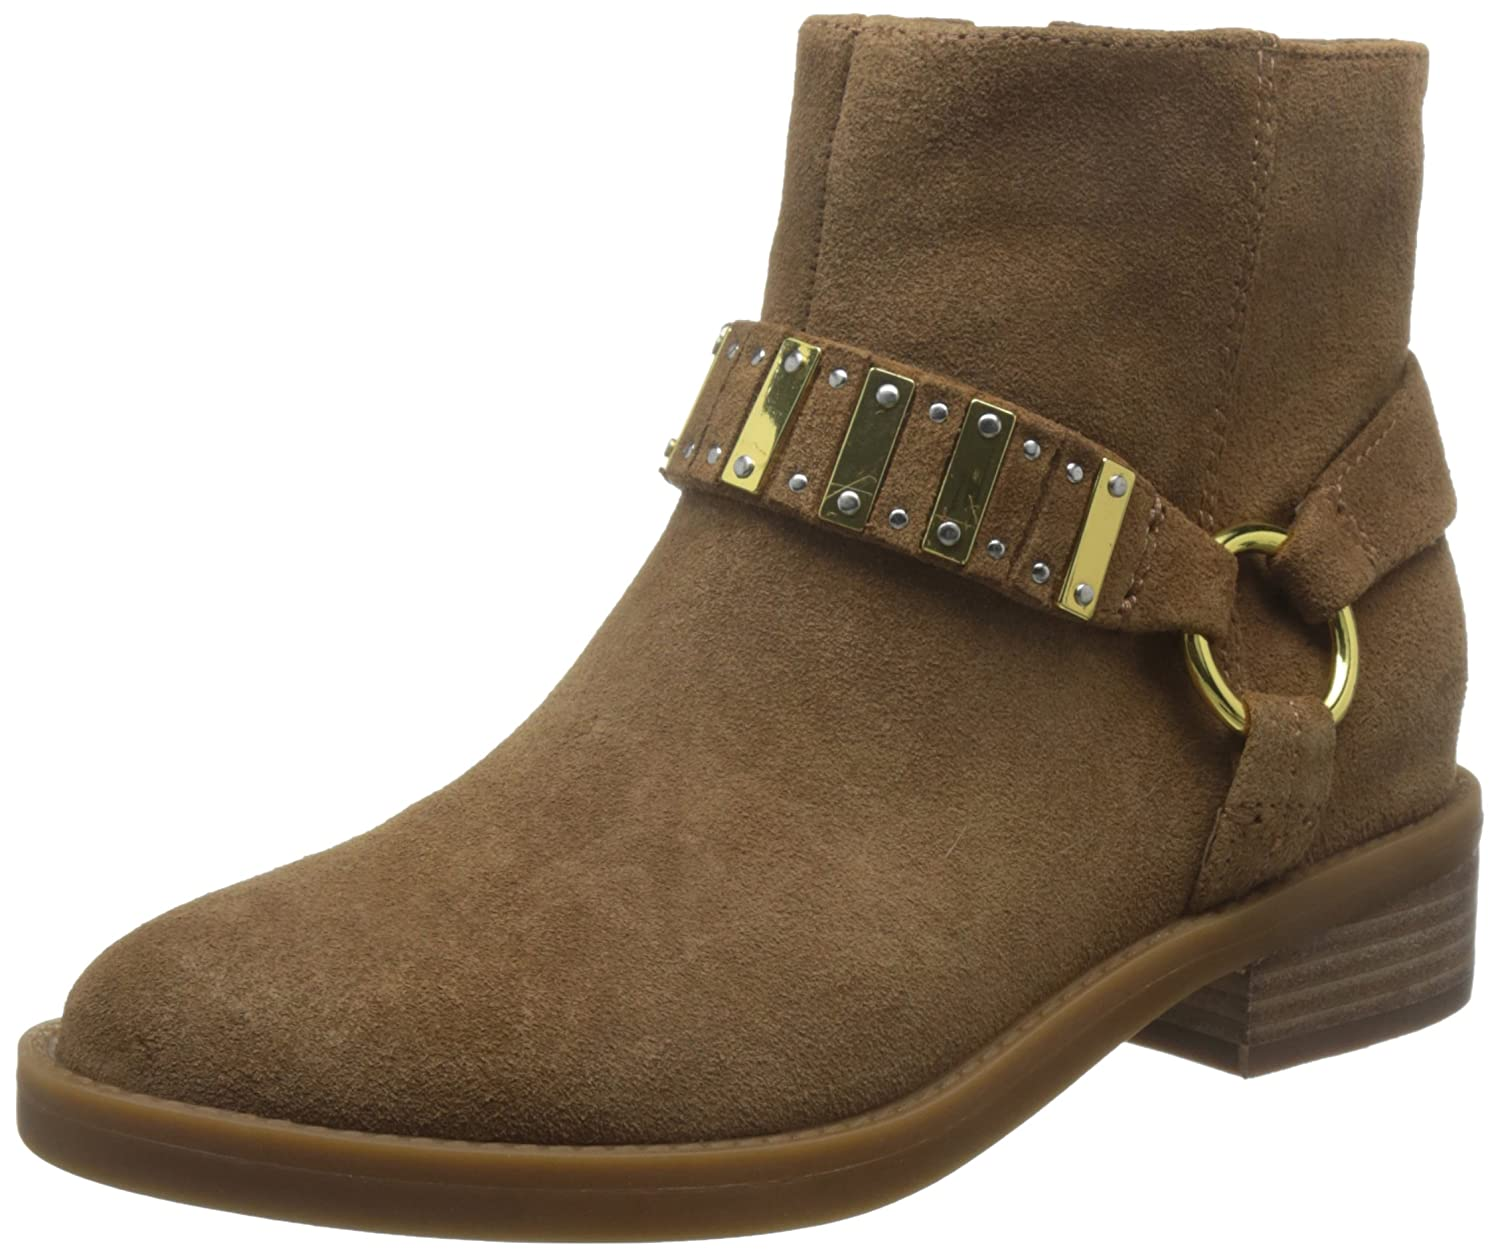 Nine West Women's Tanit Suede Ankle Boot B01MYGL1L5 10.5 B(M) US|Brown